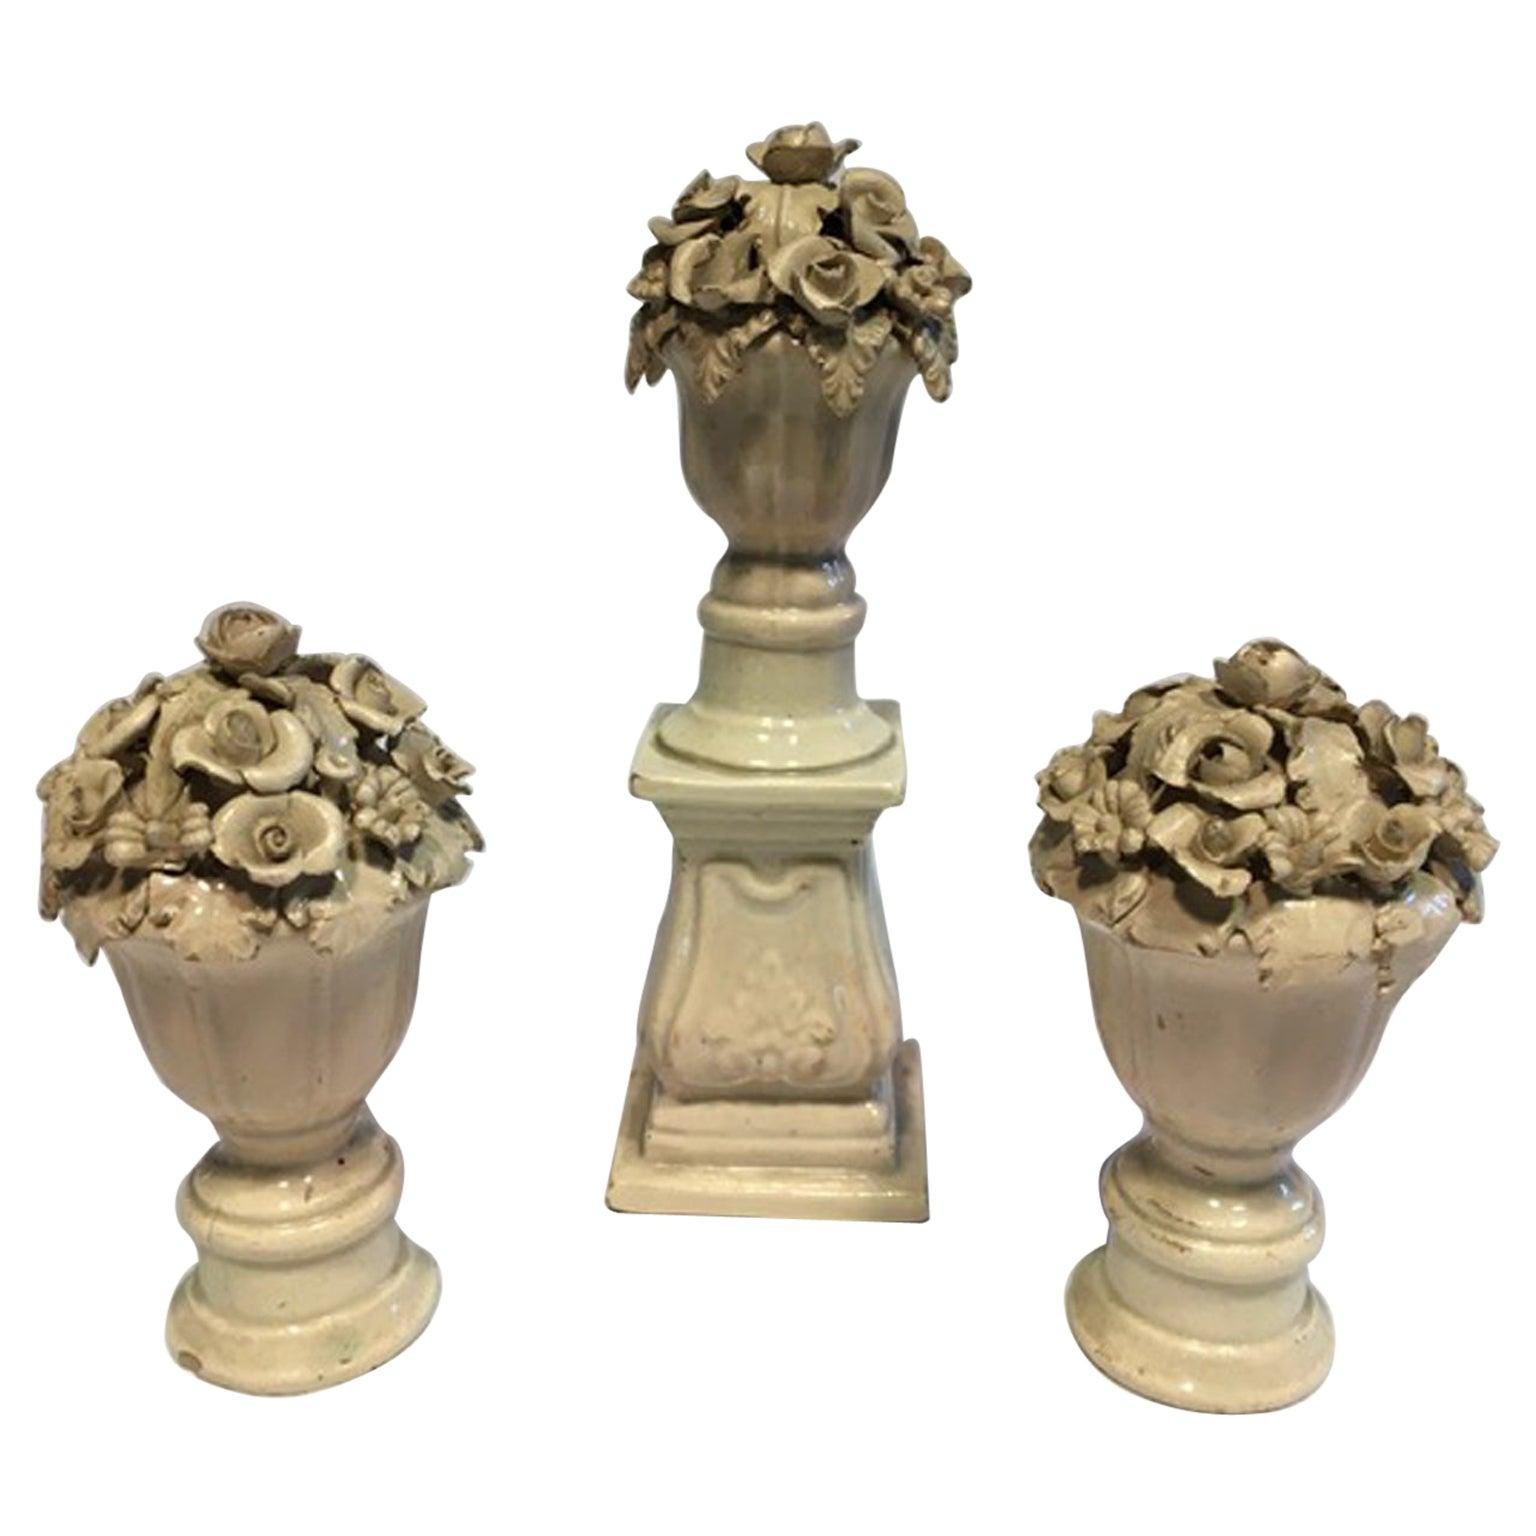 Mid-18th Century Set of 3 White Porcelain Vases with Flowers for Table Decor